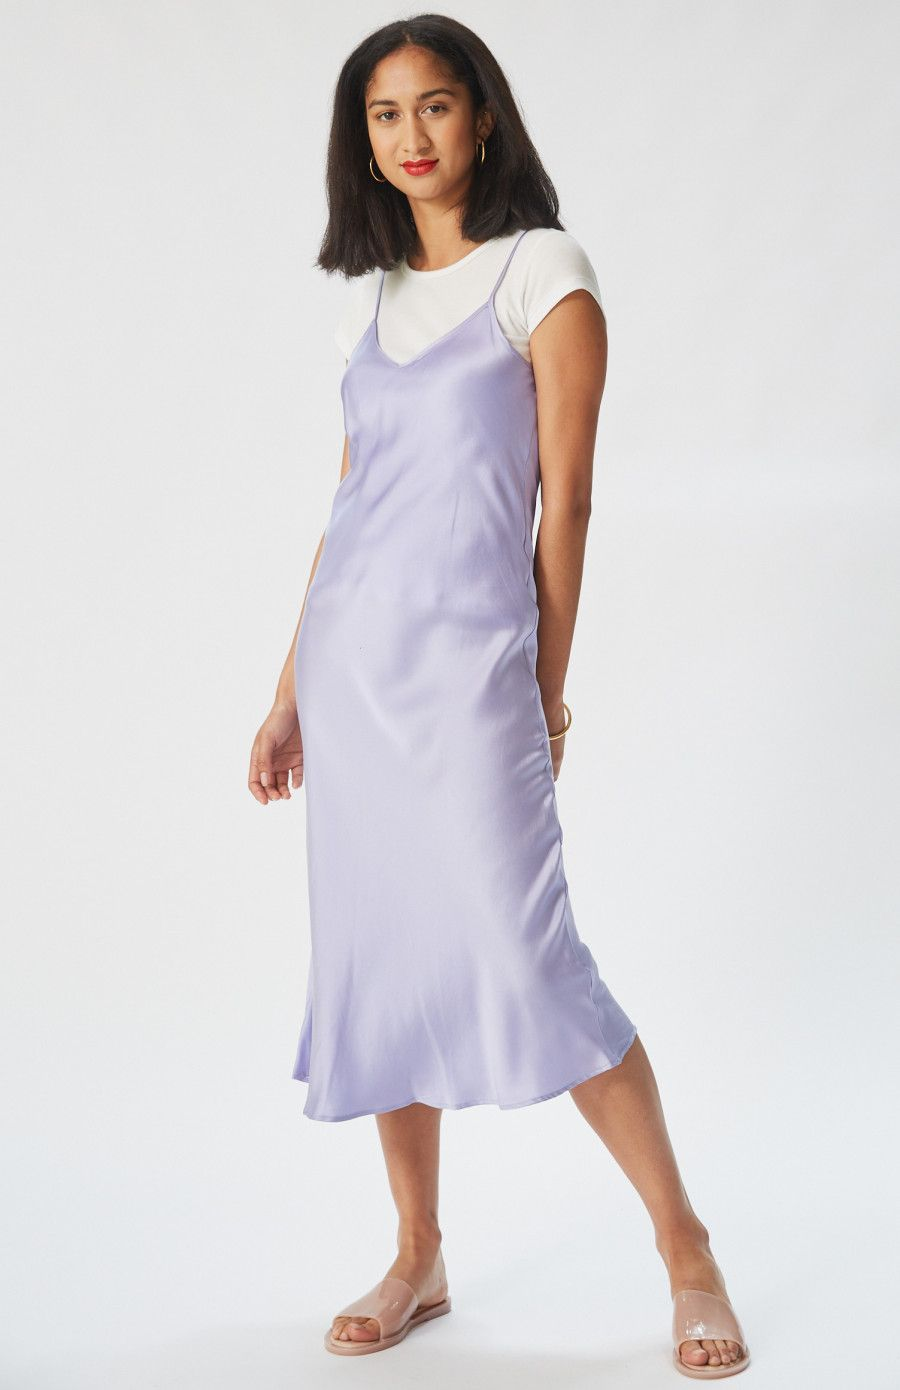 3f1387d89595 '90s Silk Slip Dress in Lavendar, ethically-made in a transparent supply  chain, and the perfect special event dress.